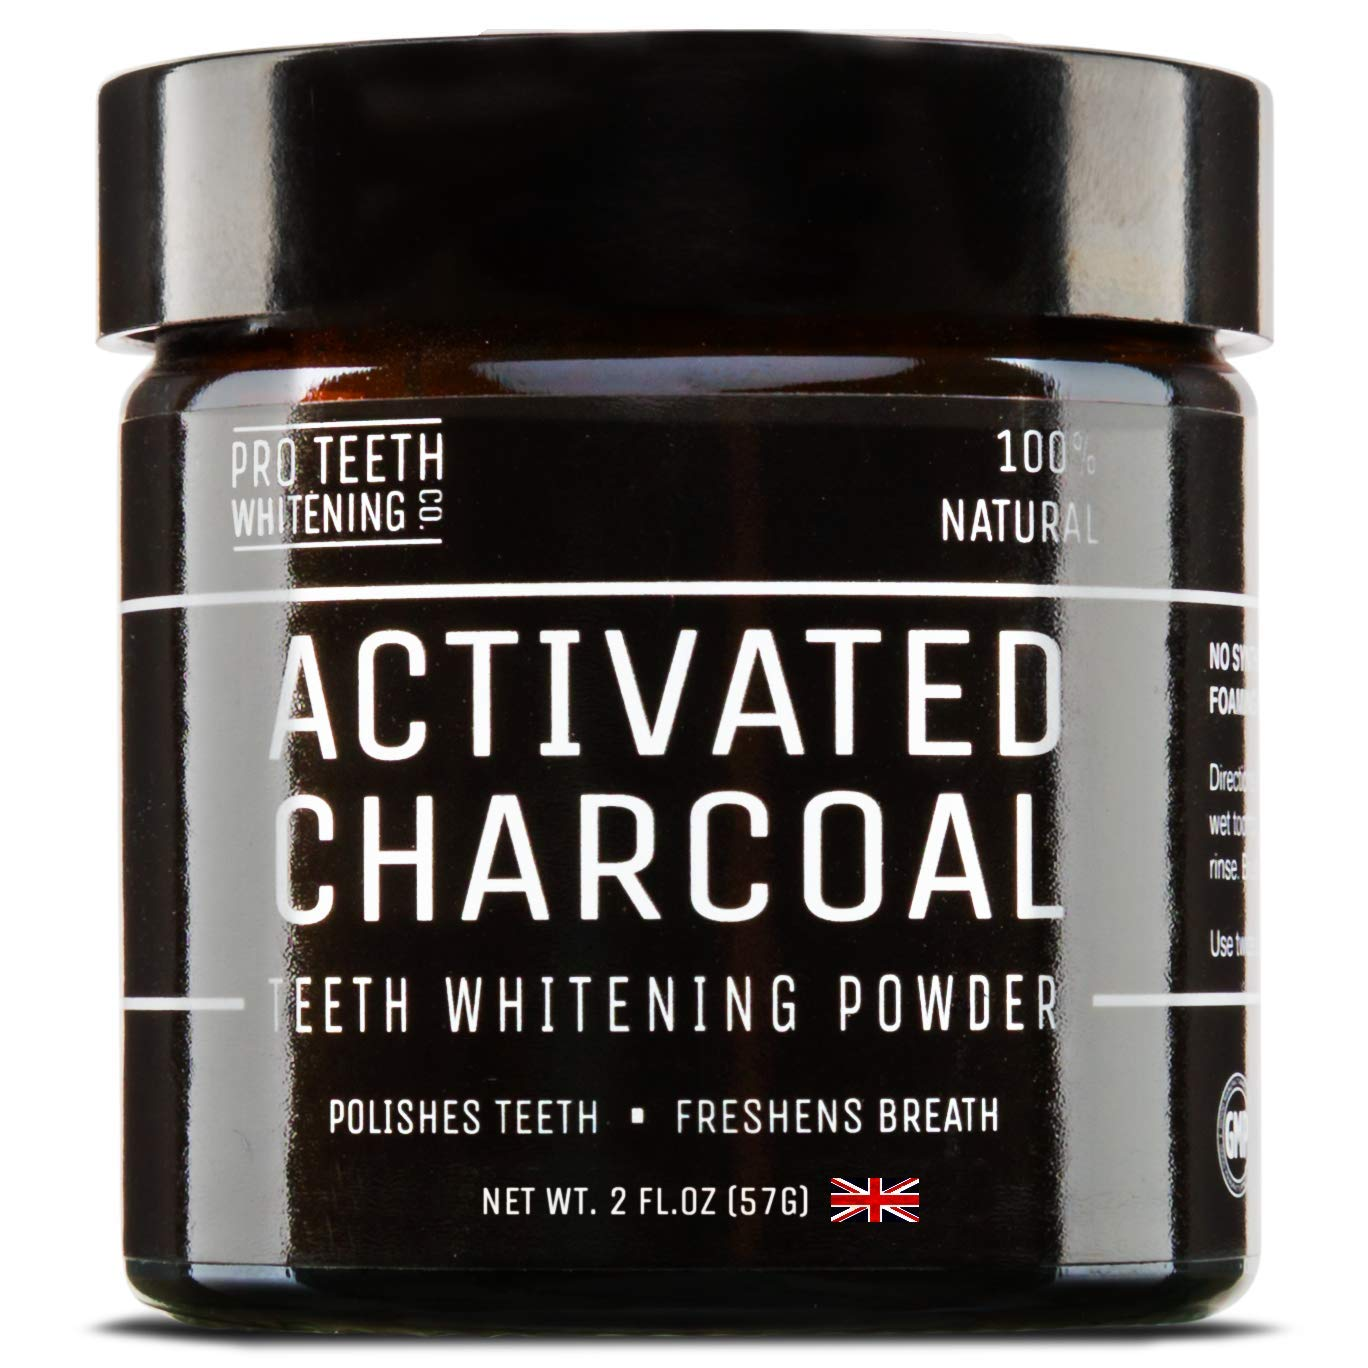 Activated Charcoal Teeth Whitening Powder | Pure Beauty Award Winning Product By Pro Teeth Whitening Co